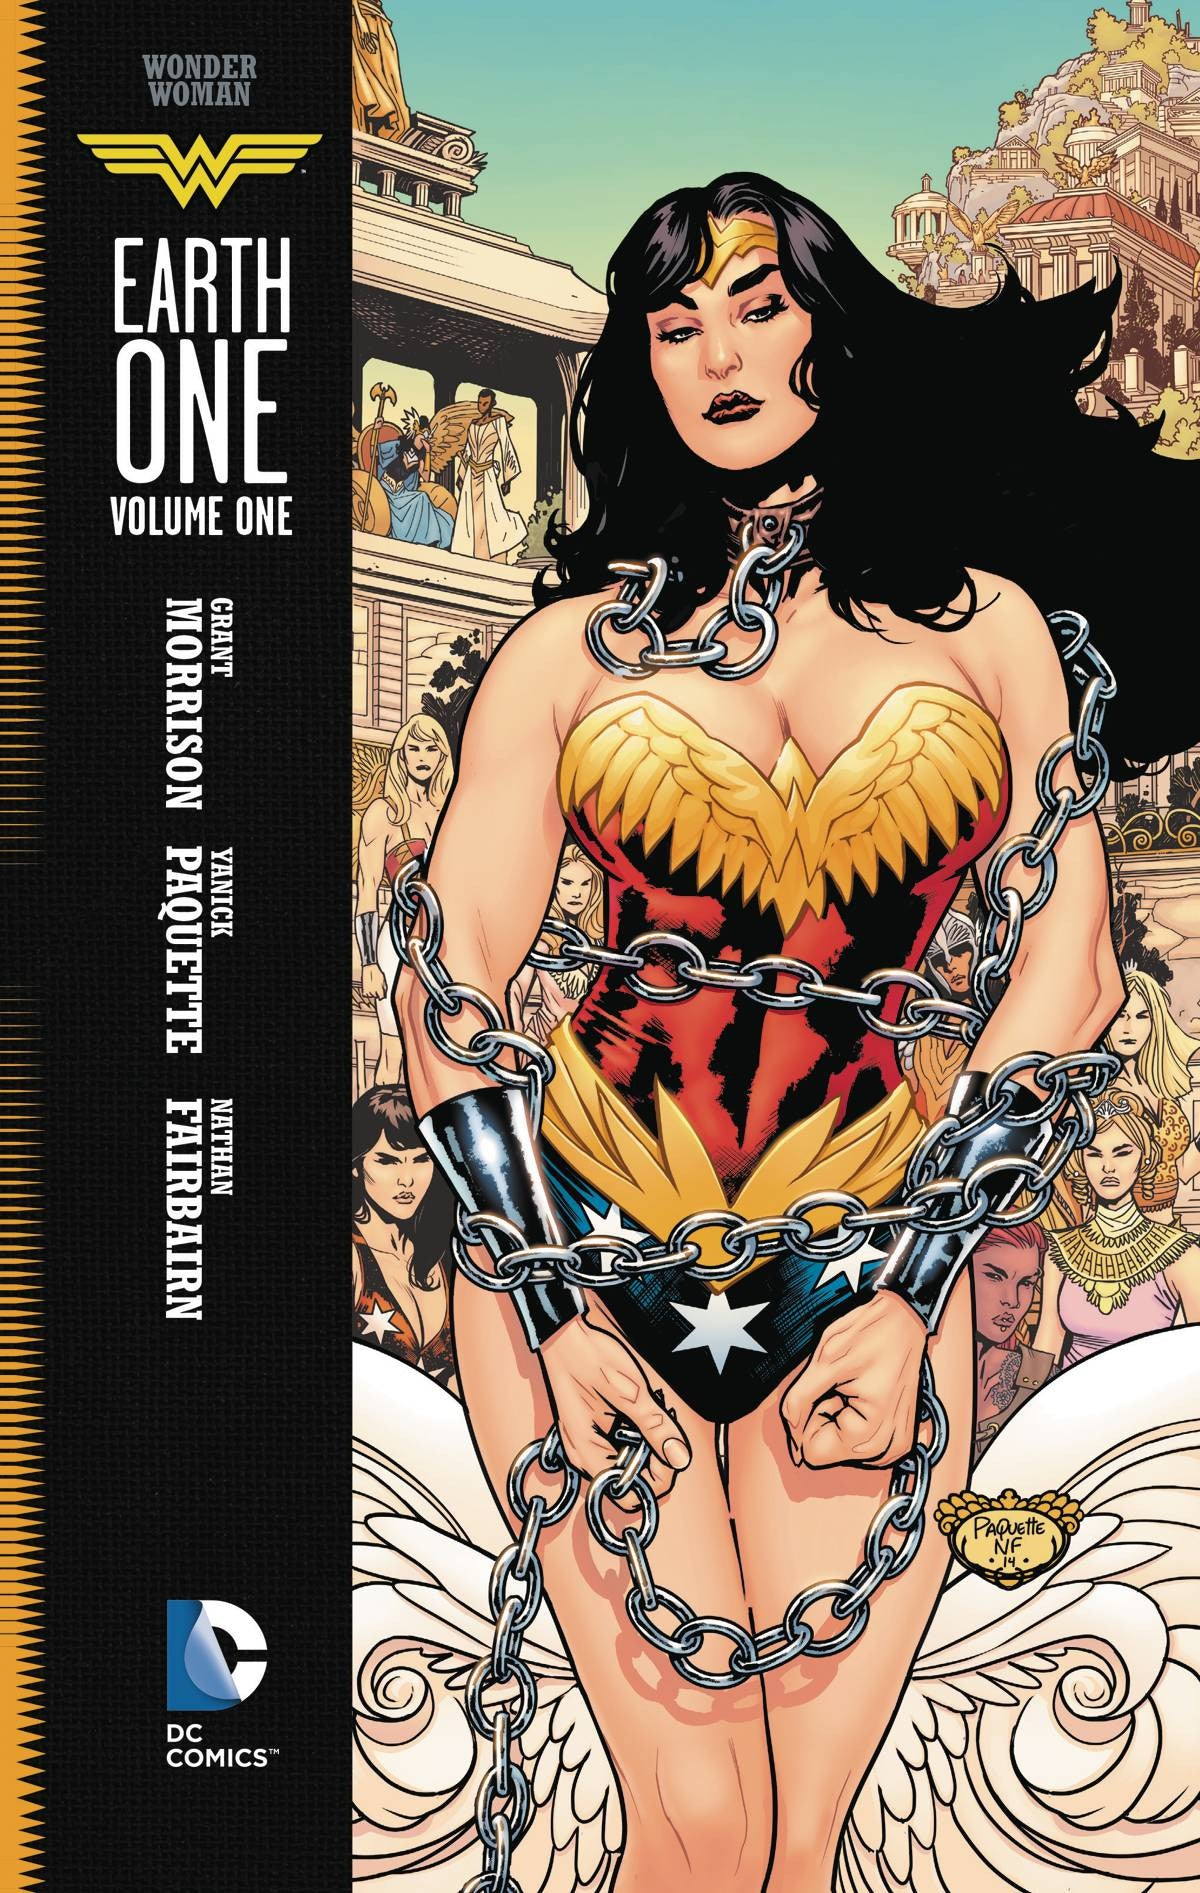 WONDER WOMAN EARTH ONE TP VOL 01